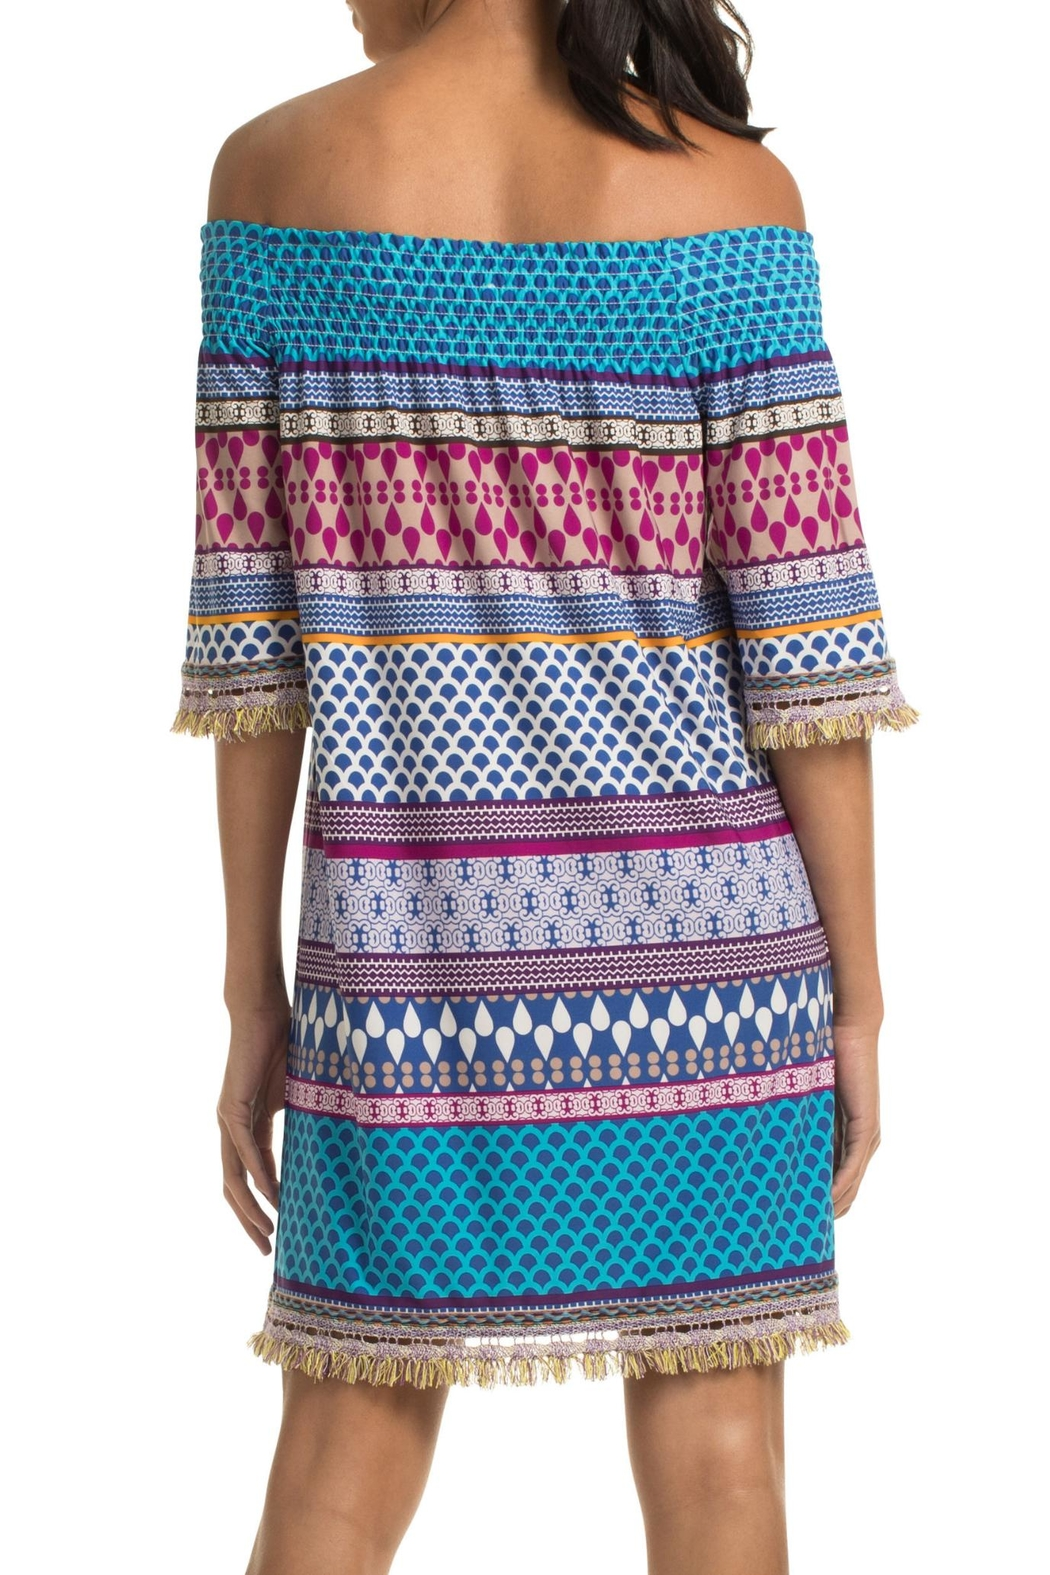 Trina Turk Emilia Dress - Front Full Image